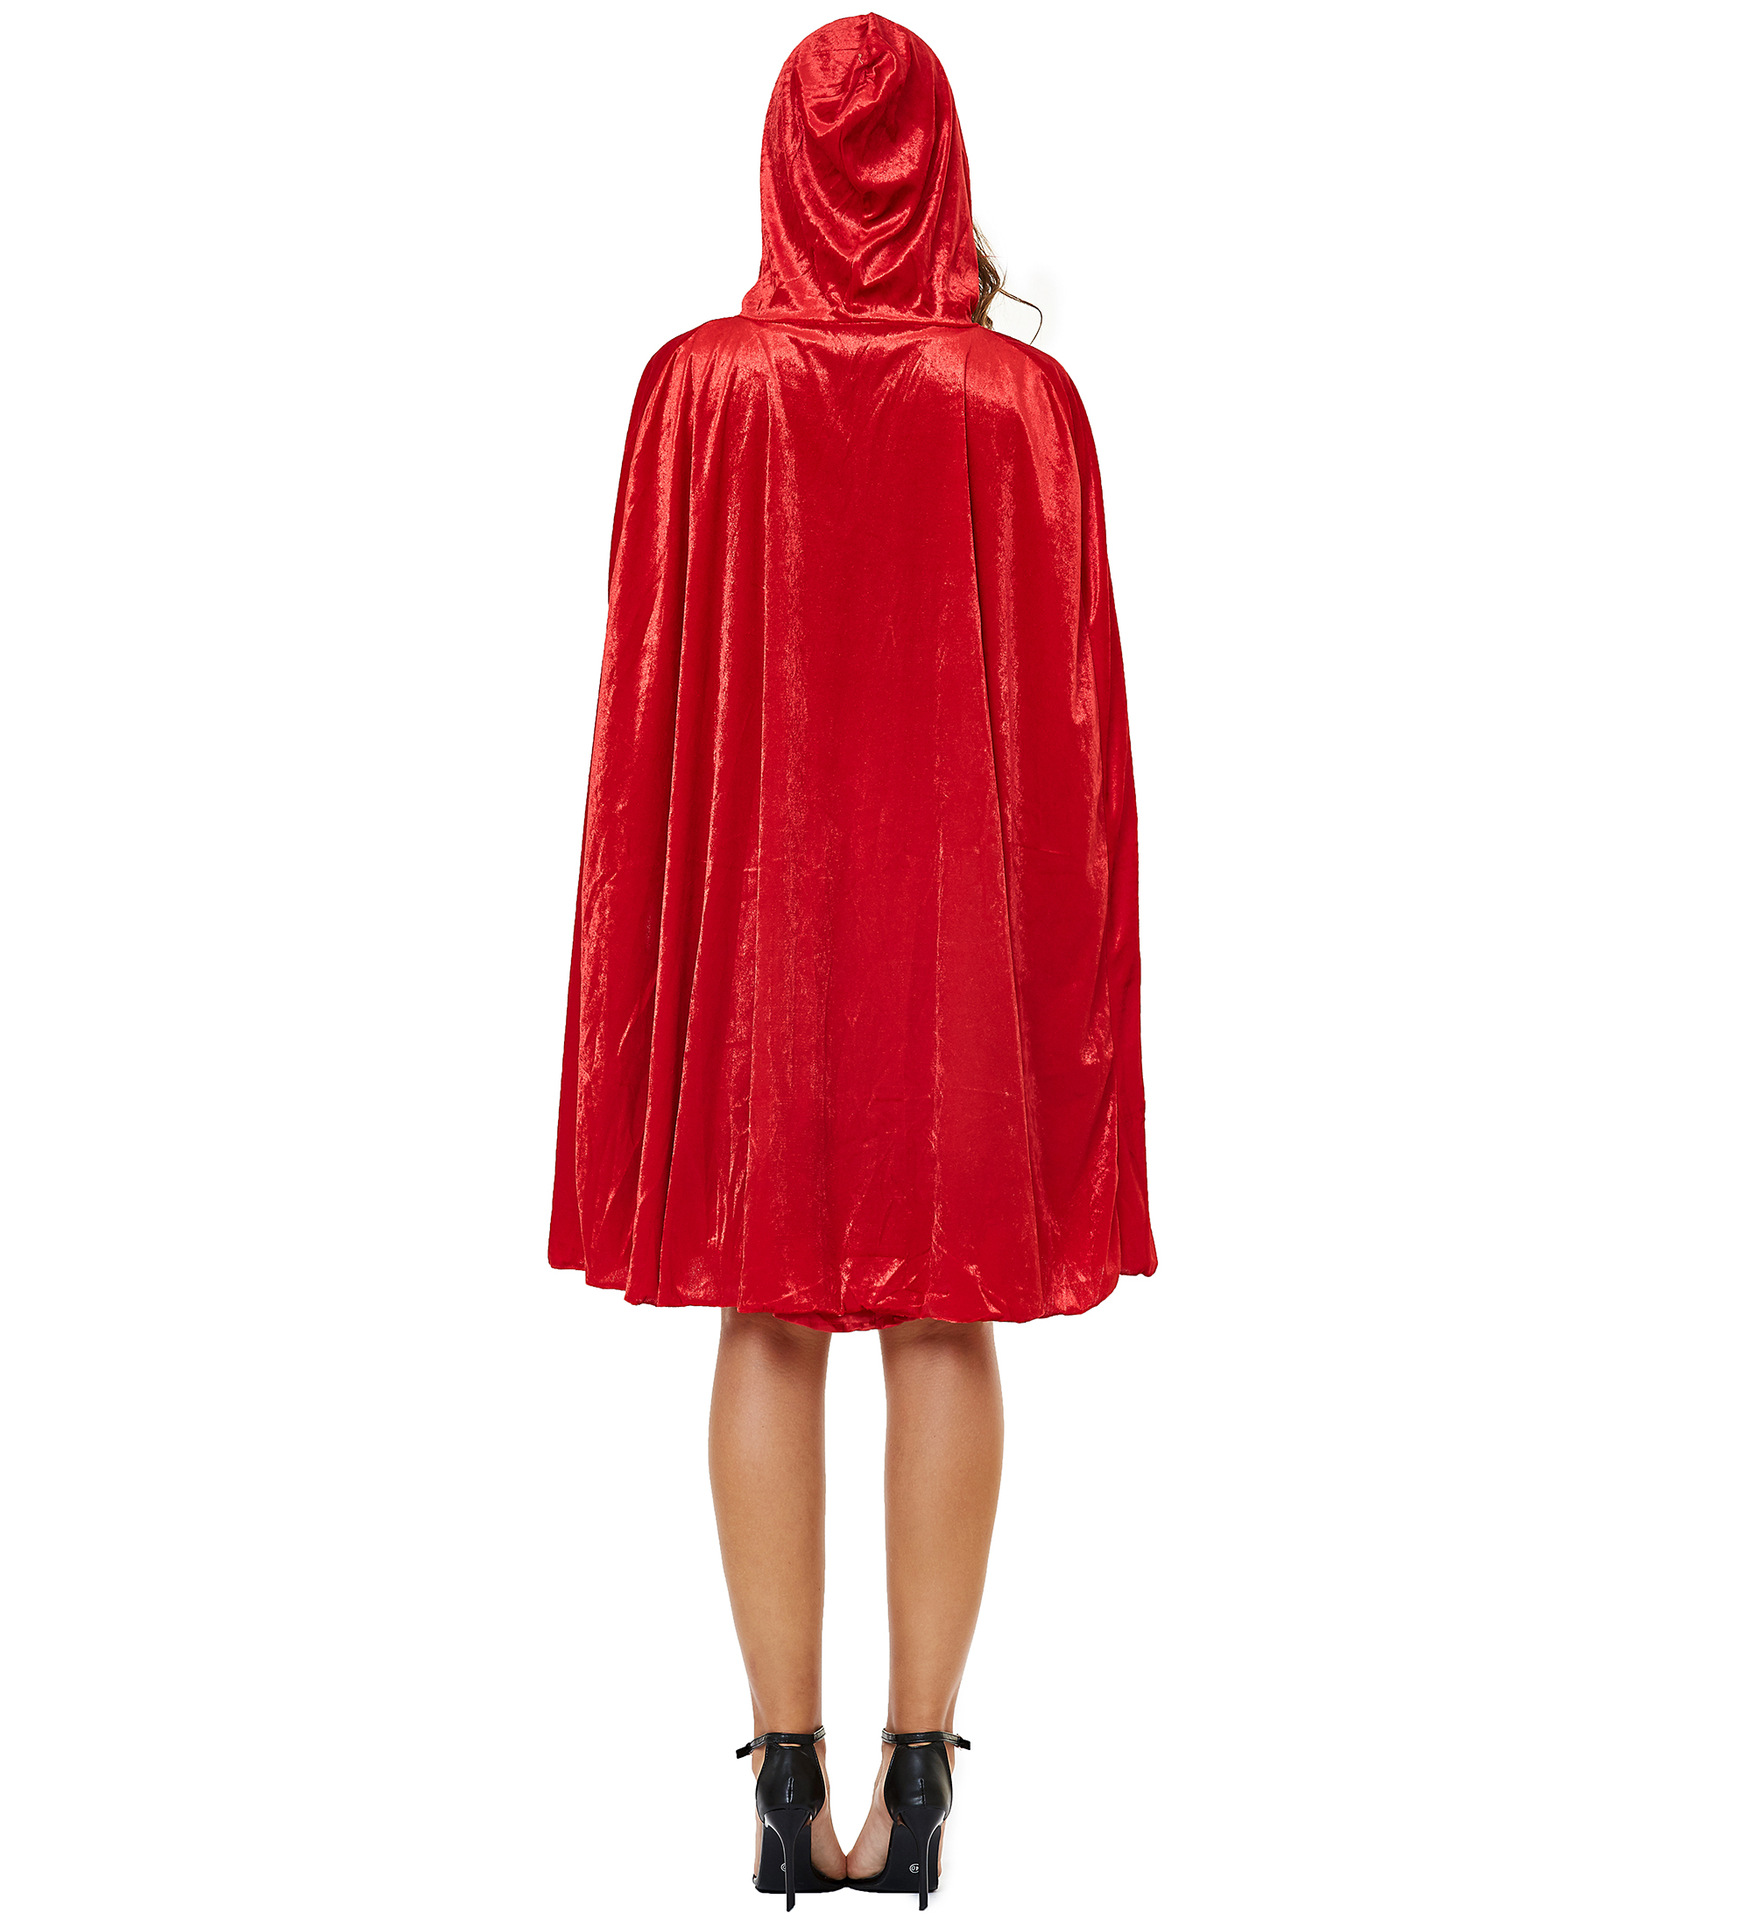 Women's Halloween Cape Little Red Riding Hood Cosplay role uniform thickened s-3xl plus 4